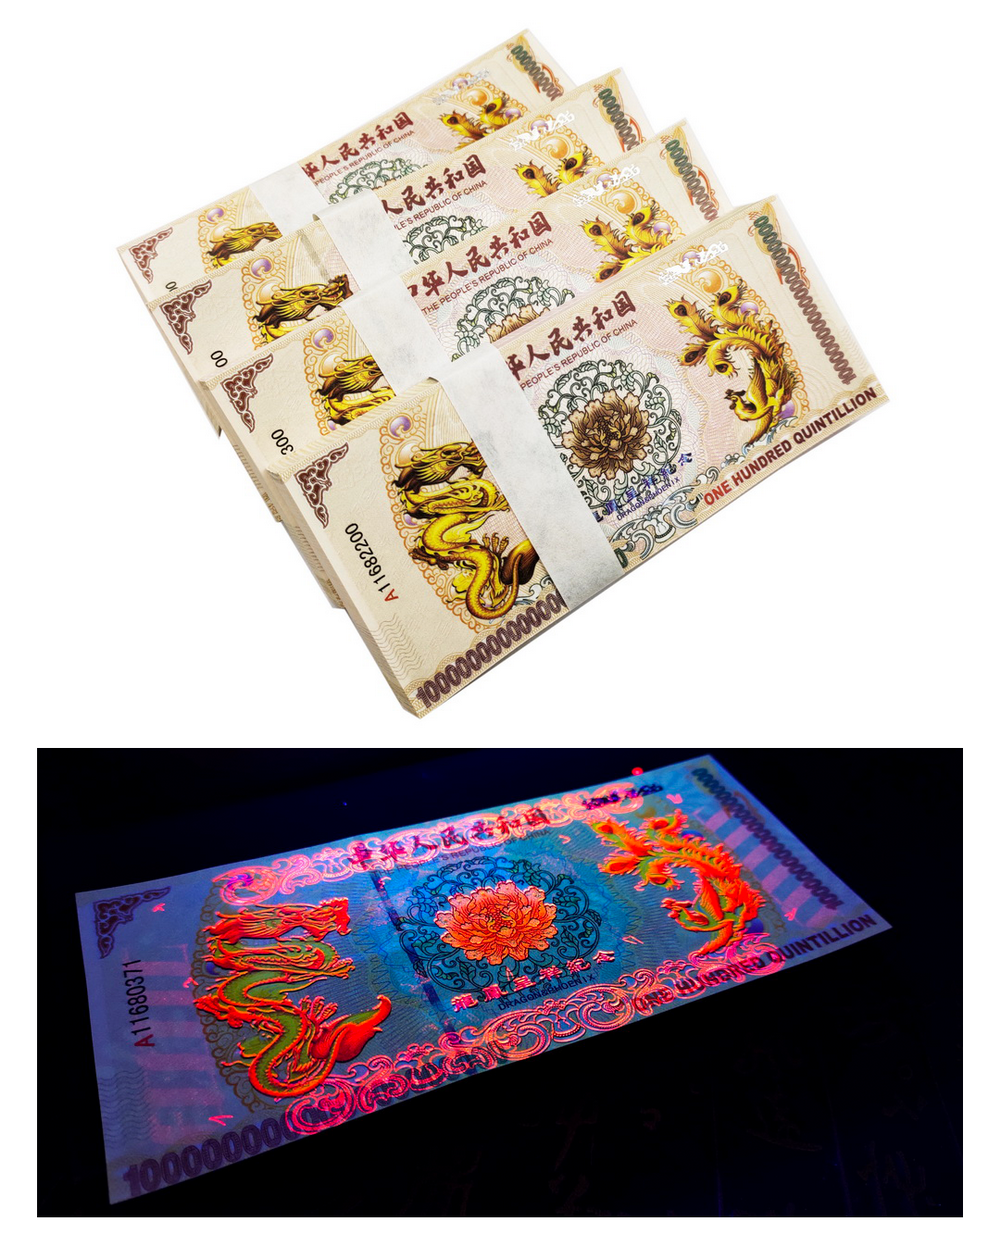 UNC Kowloon test banknote set of 9 dragon year commemorative banknotes